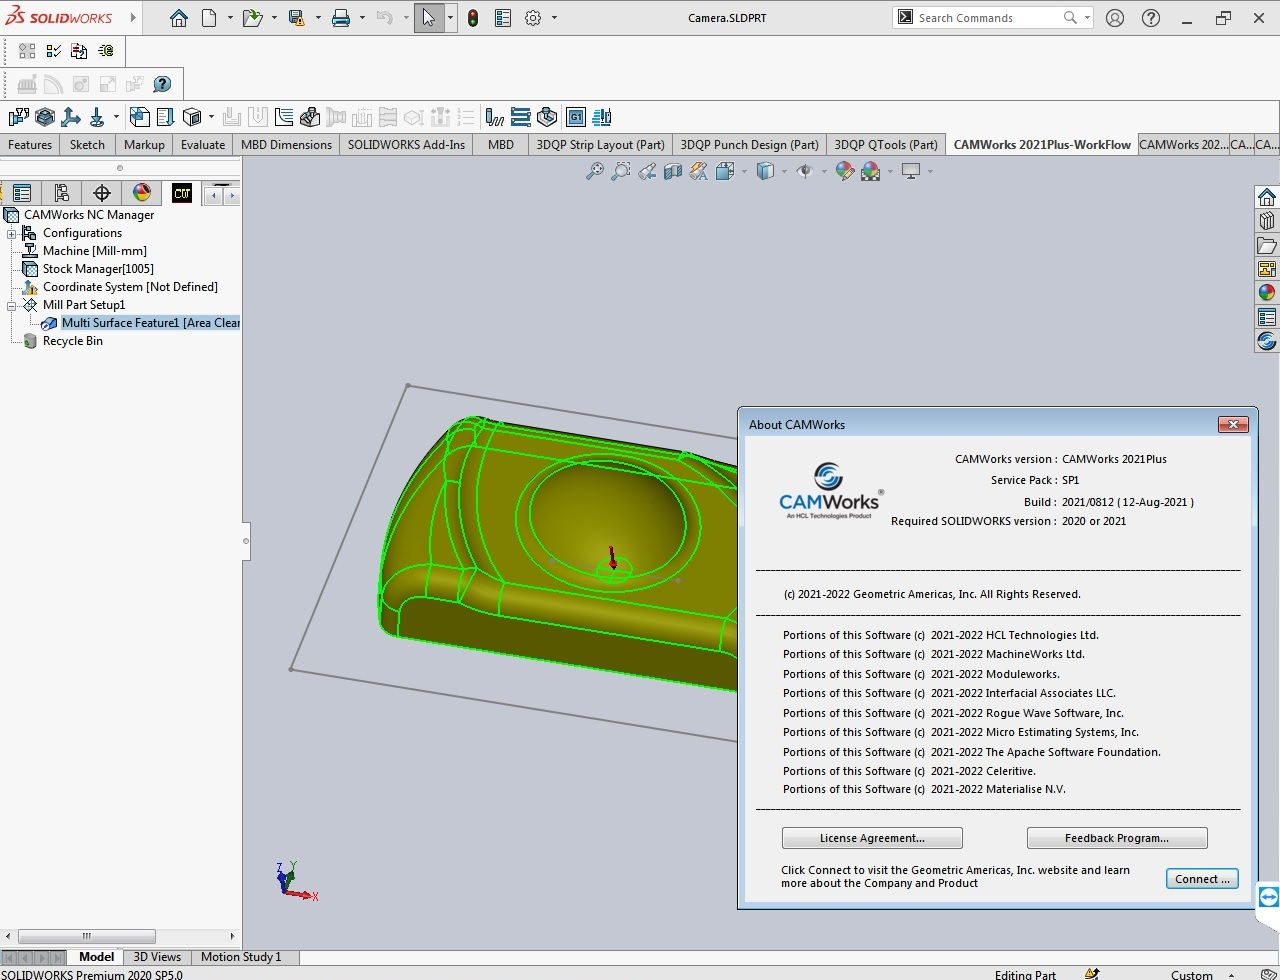 Working with CAMWorks 2021 Plus SP1 for SolidWorks 2020-2021 full